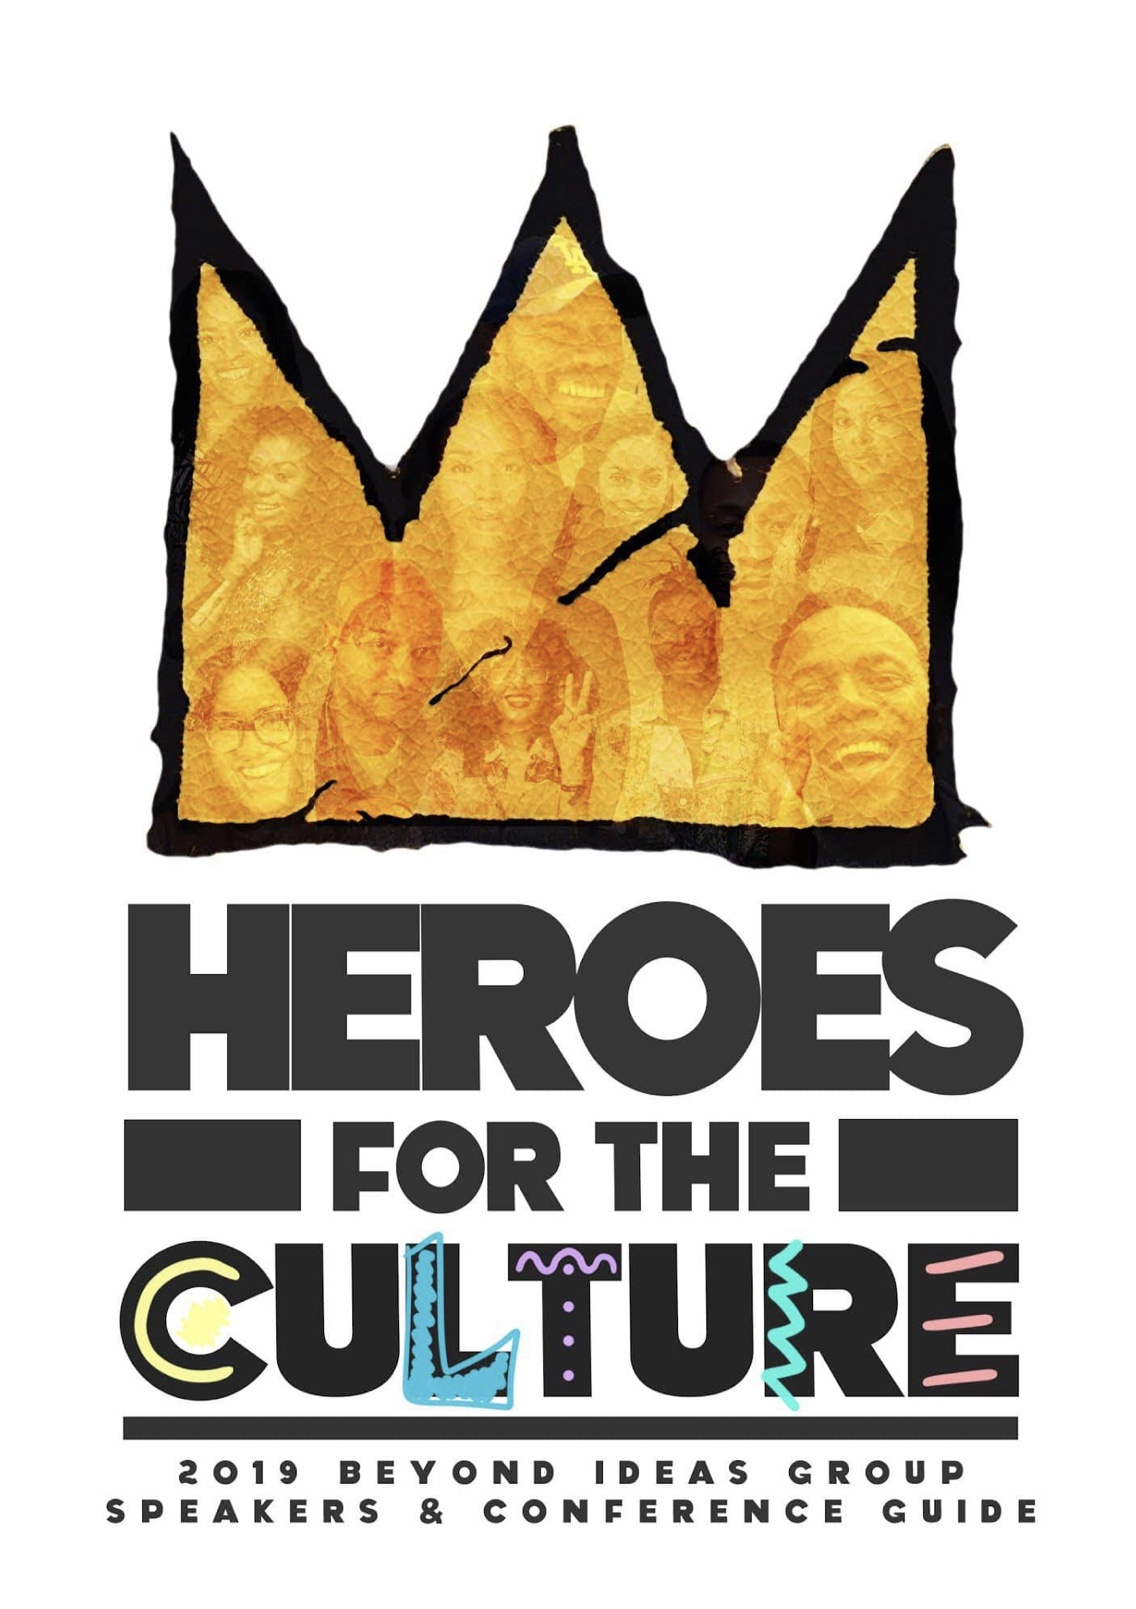 Heroes for the Culture_CJ Johnson